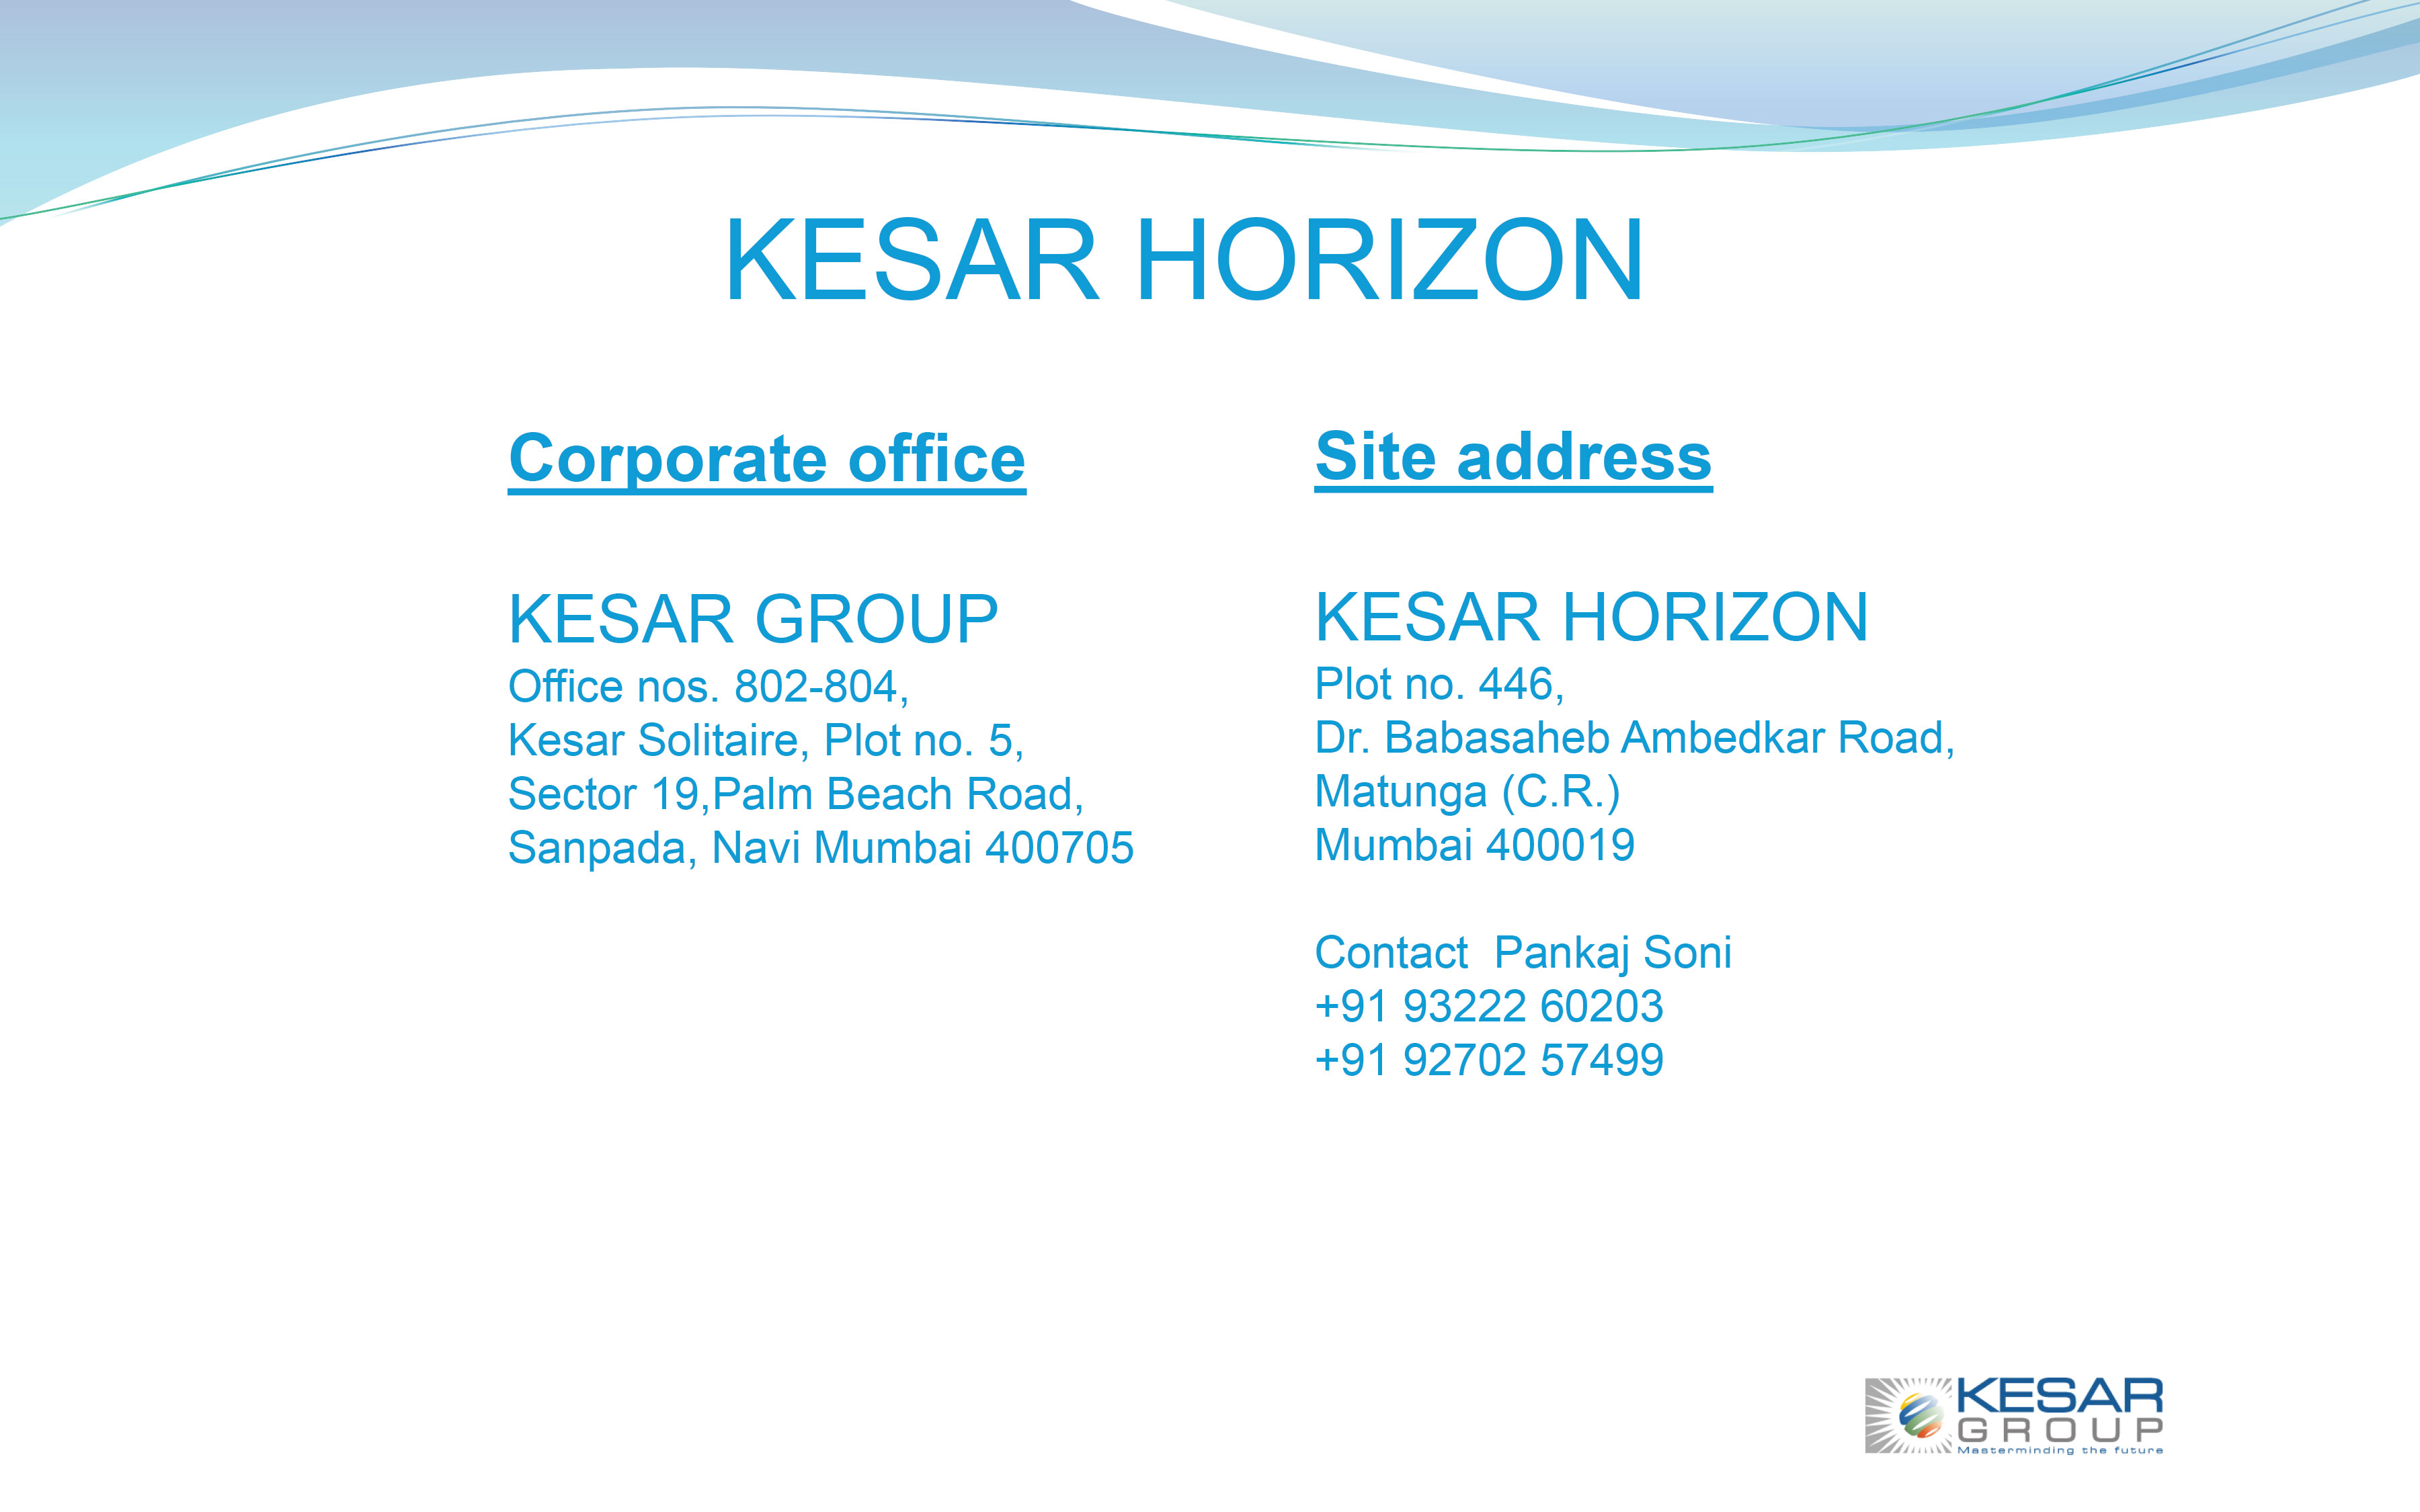 1 Bedroom Apartments College Station Contemporary Sea View 5 Bedroom Apartments At Kesar